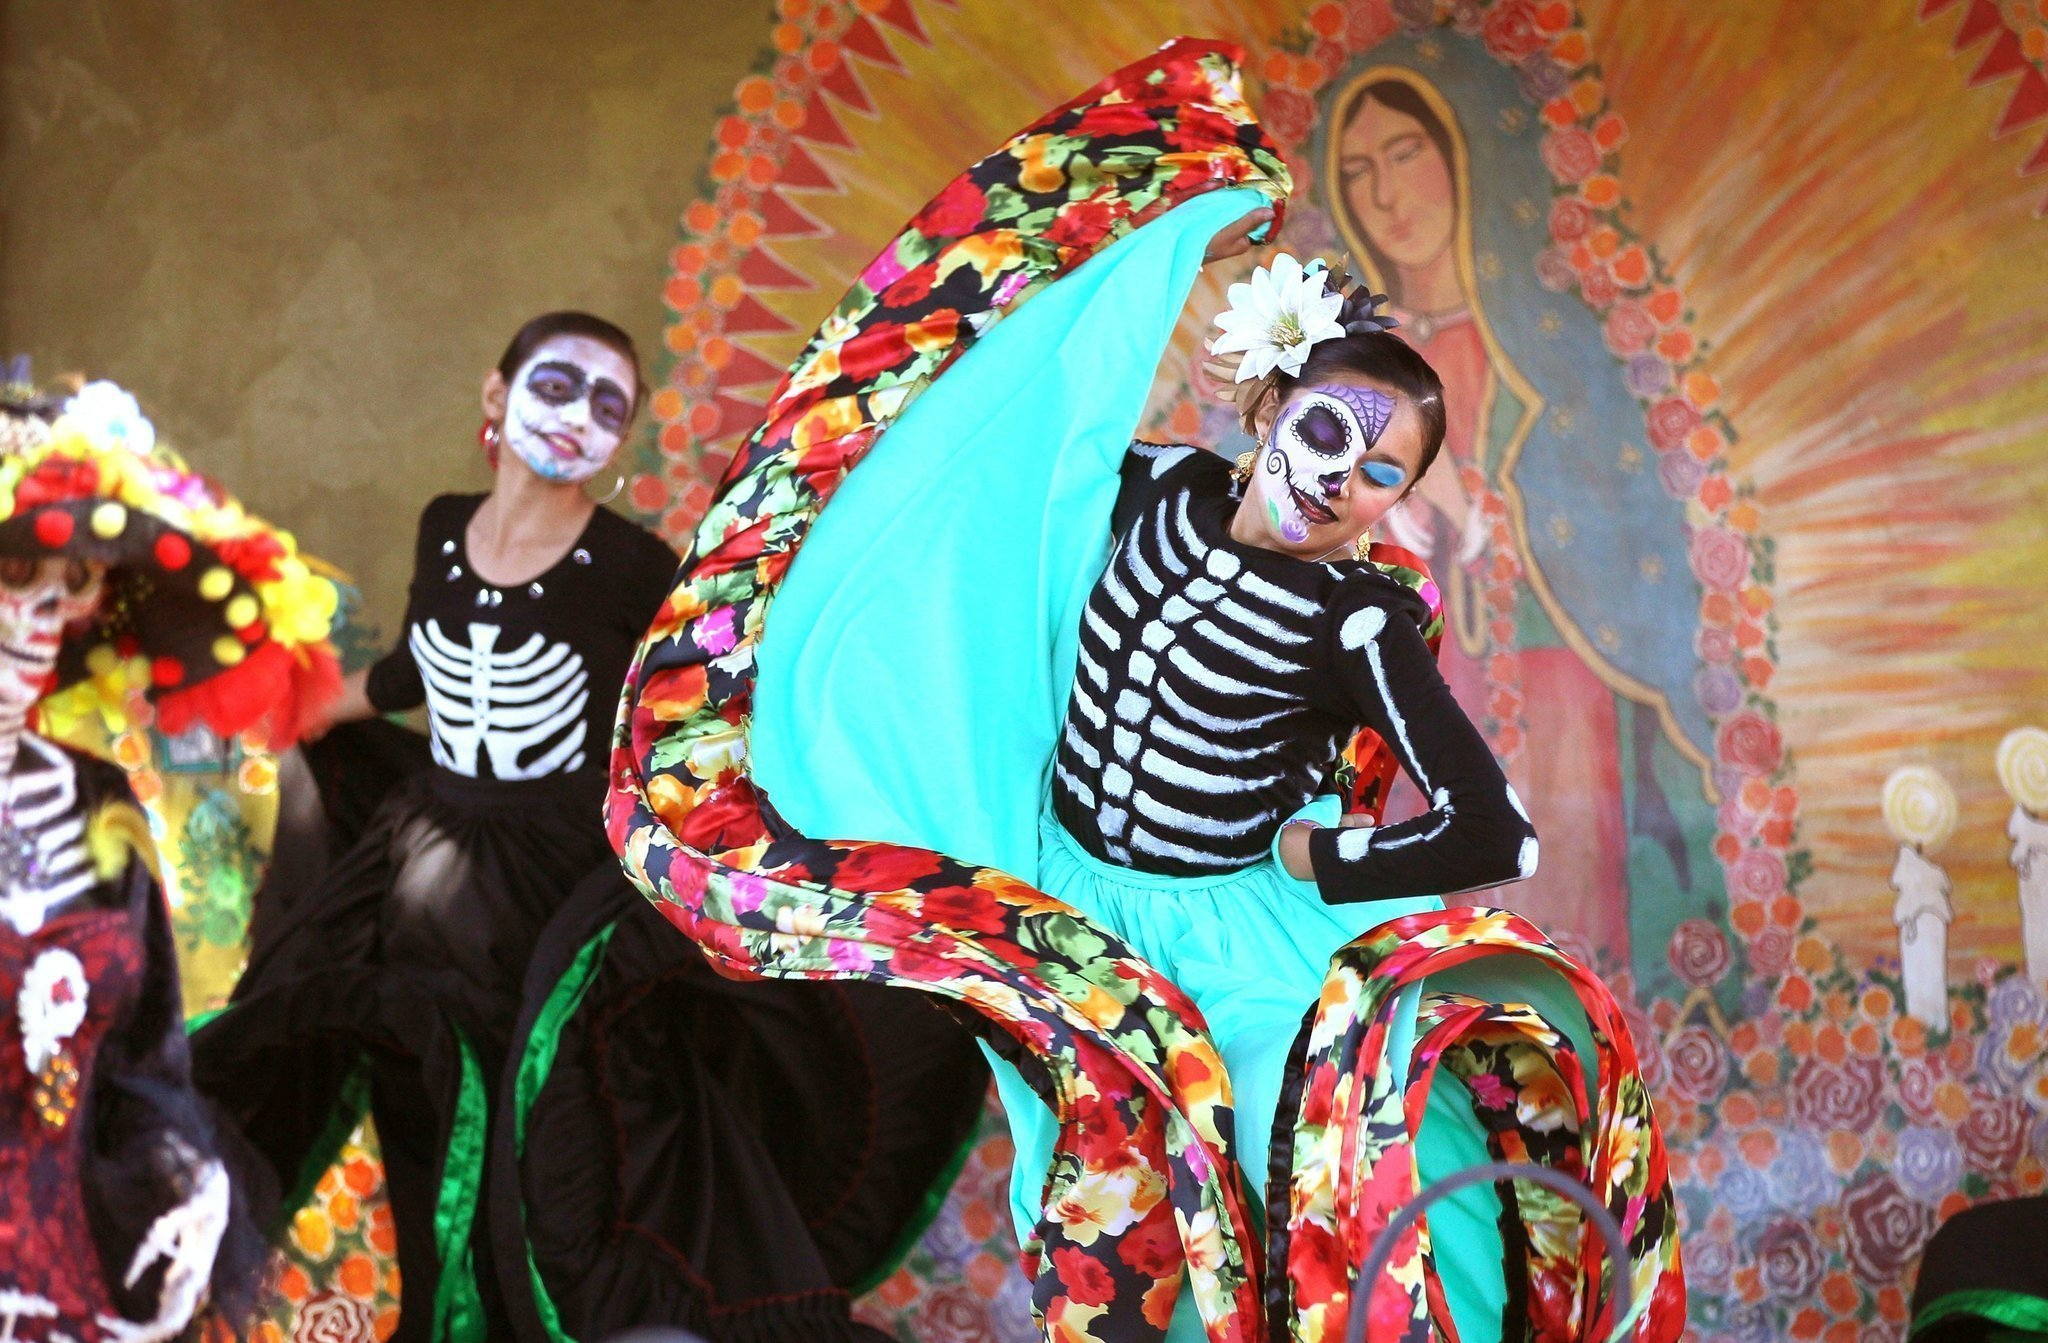 essay the day of the dead mexico Dia de los muertos in mexico has become one of the most famous of celebrations  because of the elaborate food preparations and decorative.